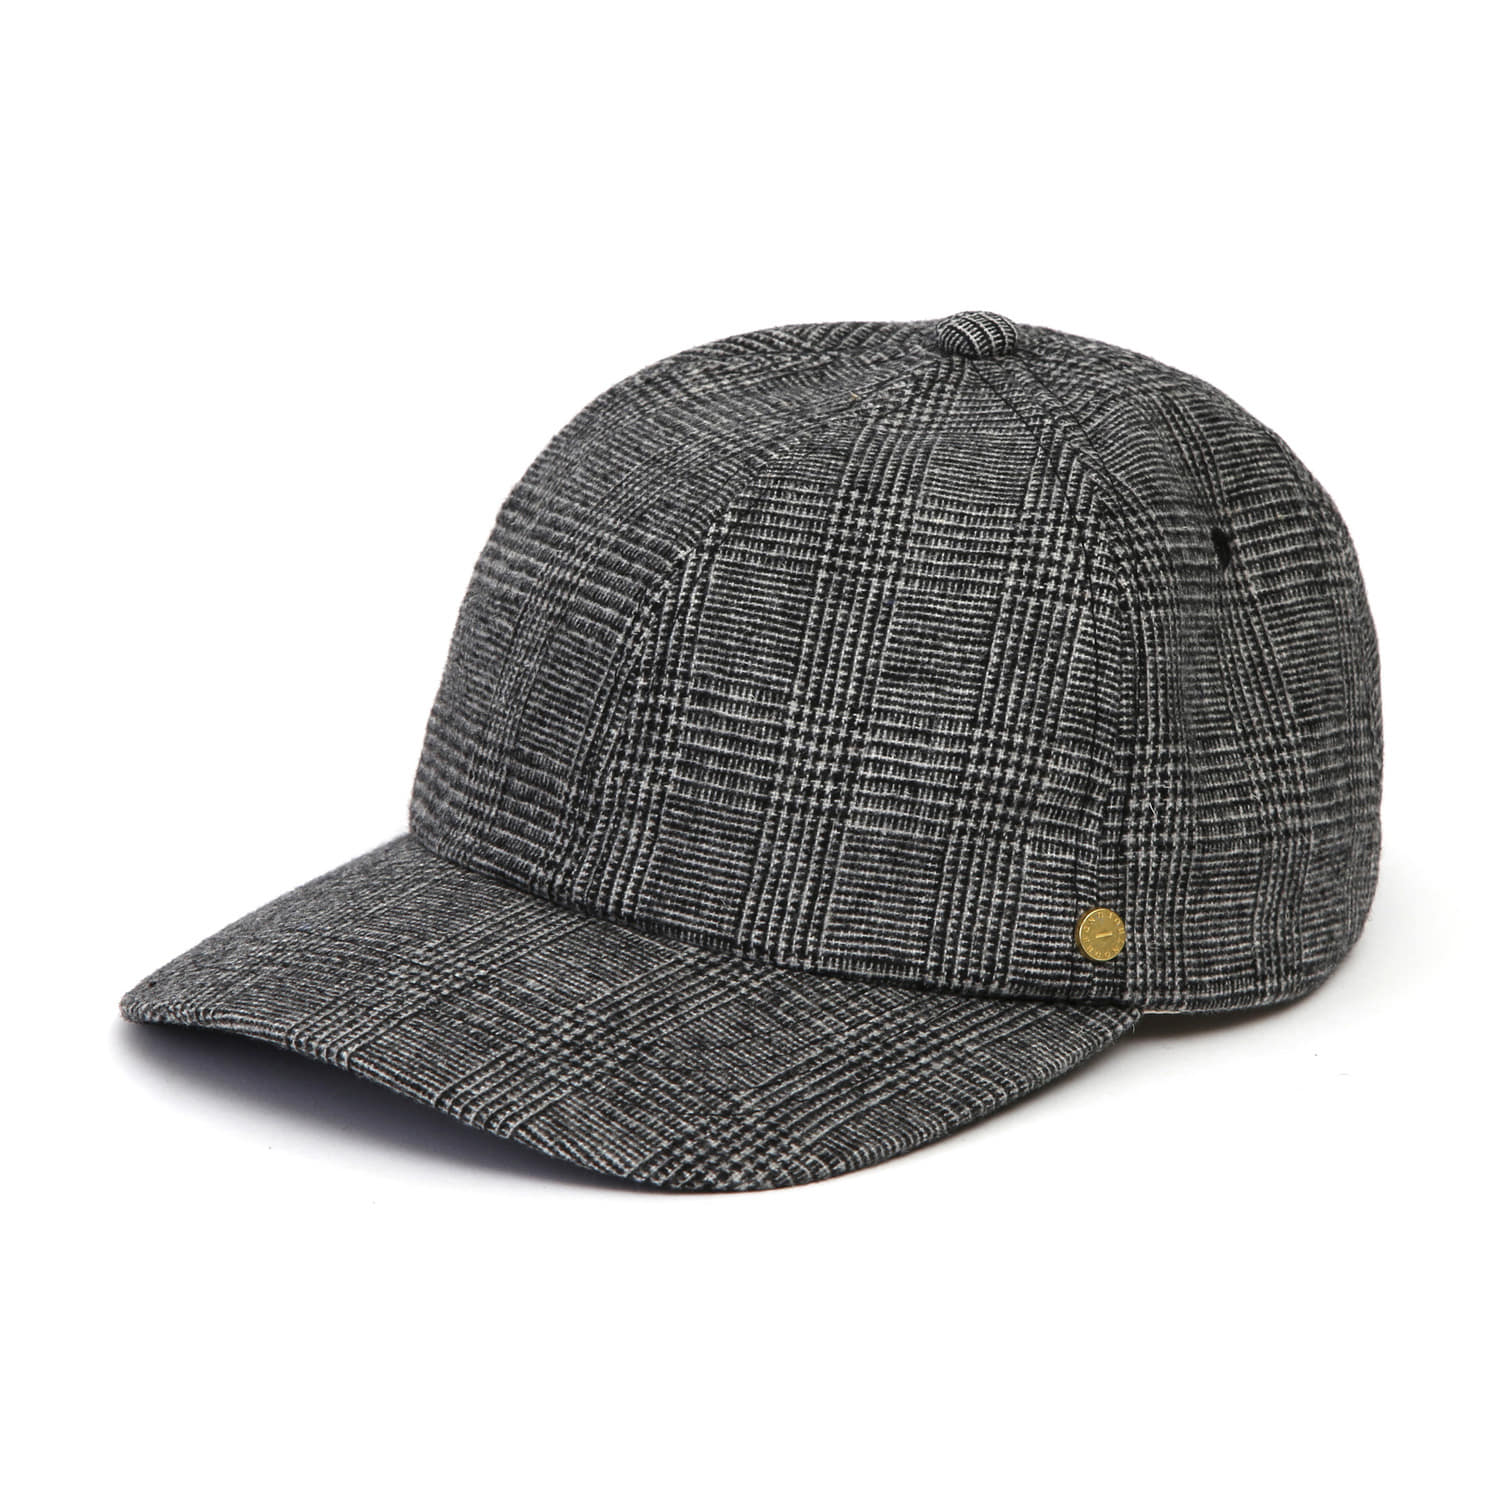 6PANNEL BALL CAP / MODS GLEN / GREY